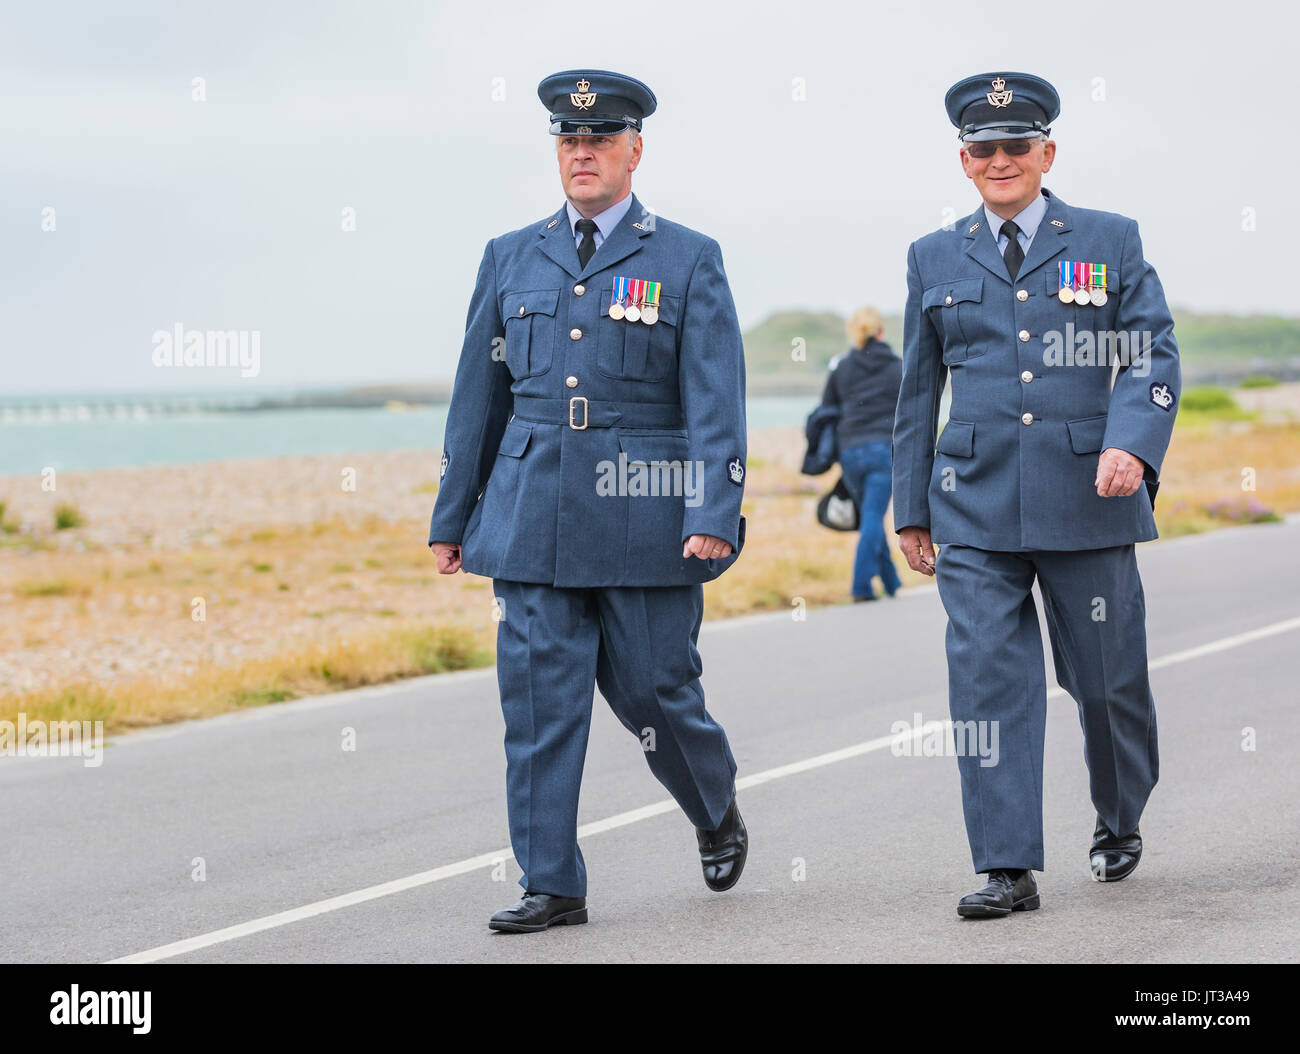 ATC (Air Training Corps) officers matching on Armed Forces Day on 24th June 2017 in Littlehampton, West Sussex, England, UK. - Stock Image